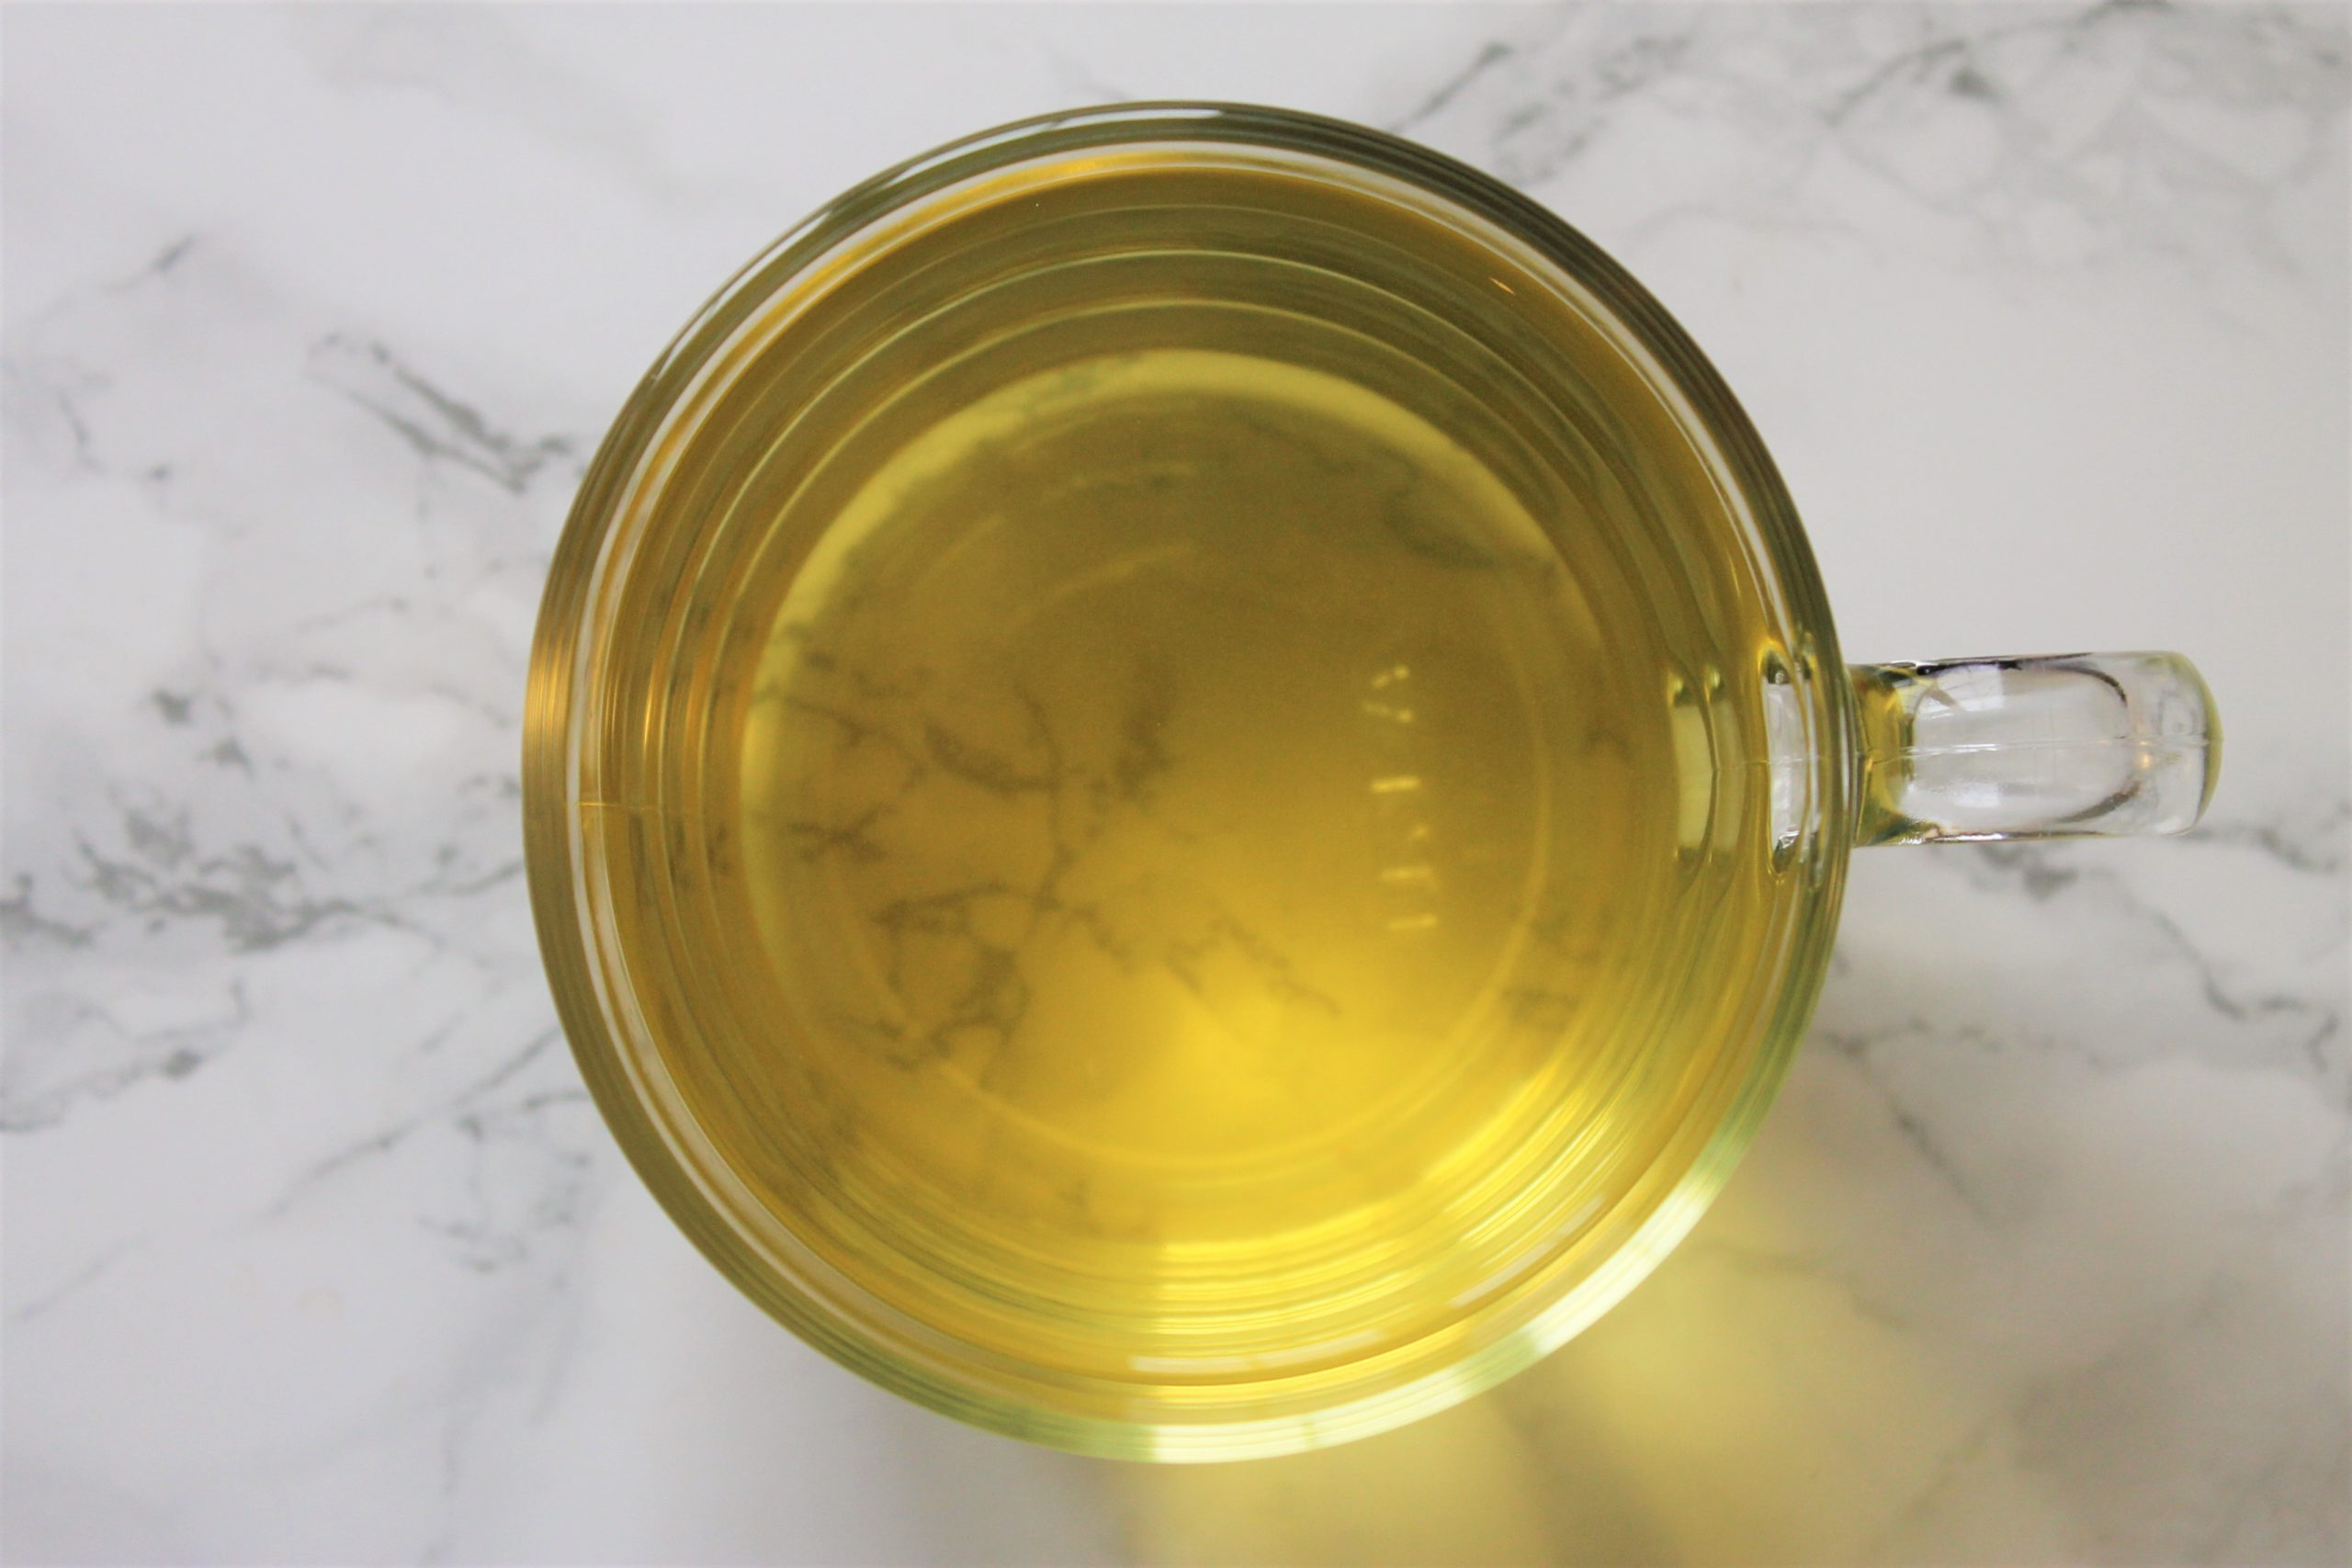 yellow tea chamomile in glass teacup on marble